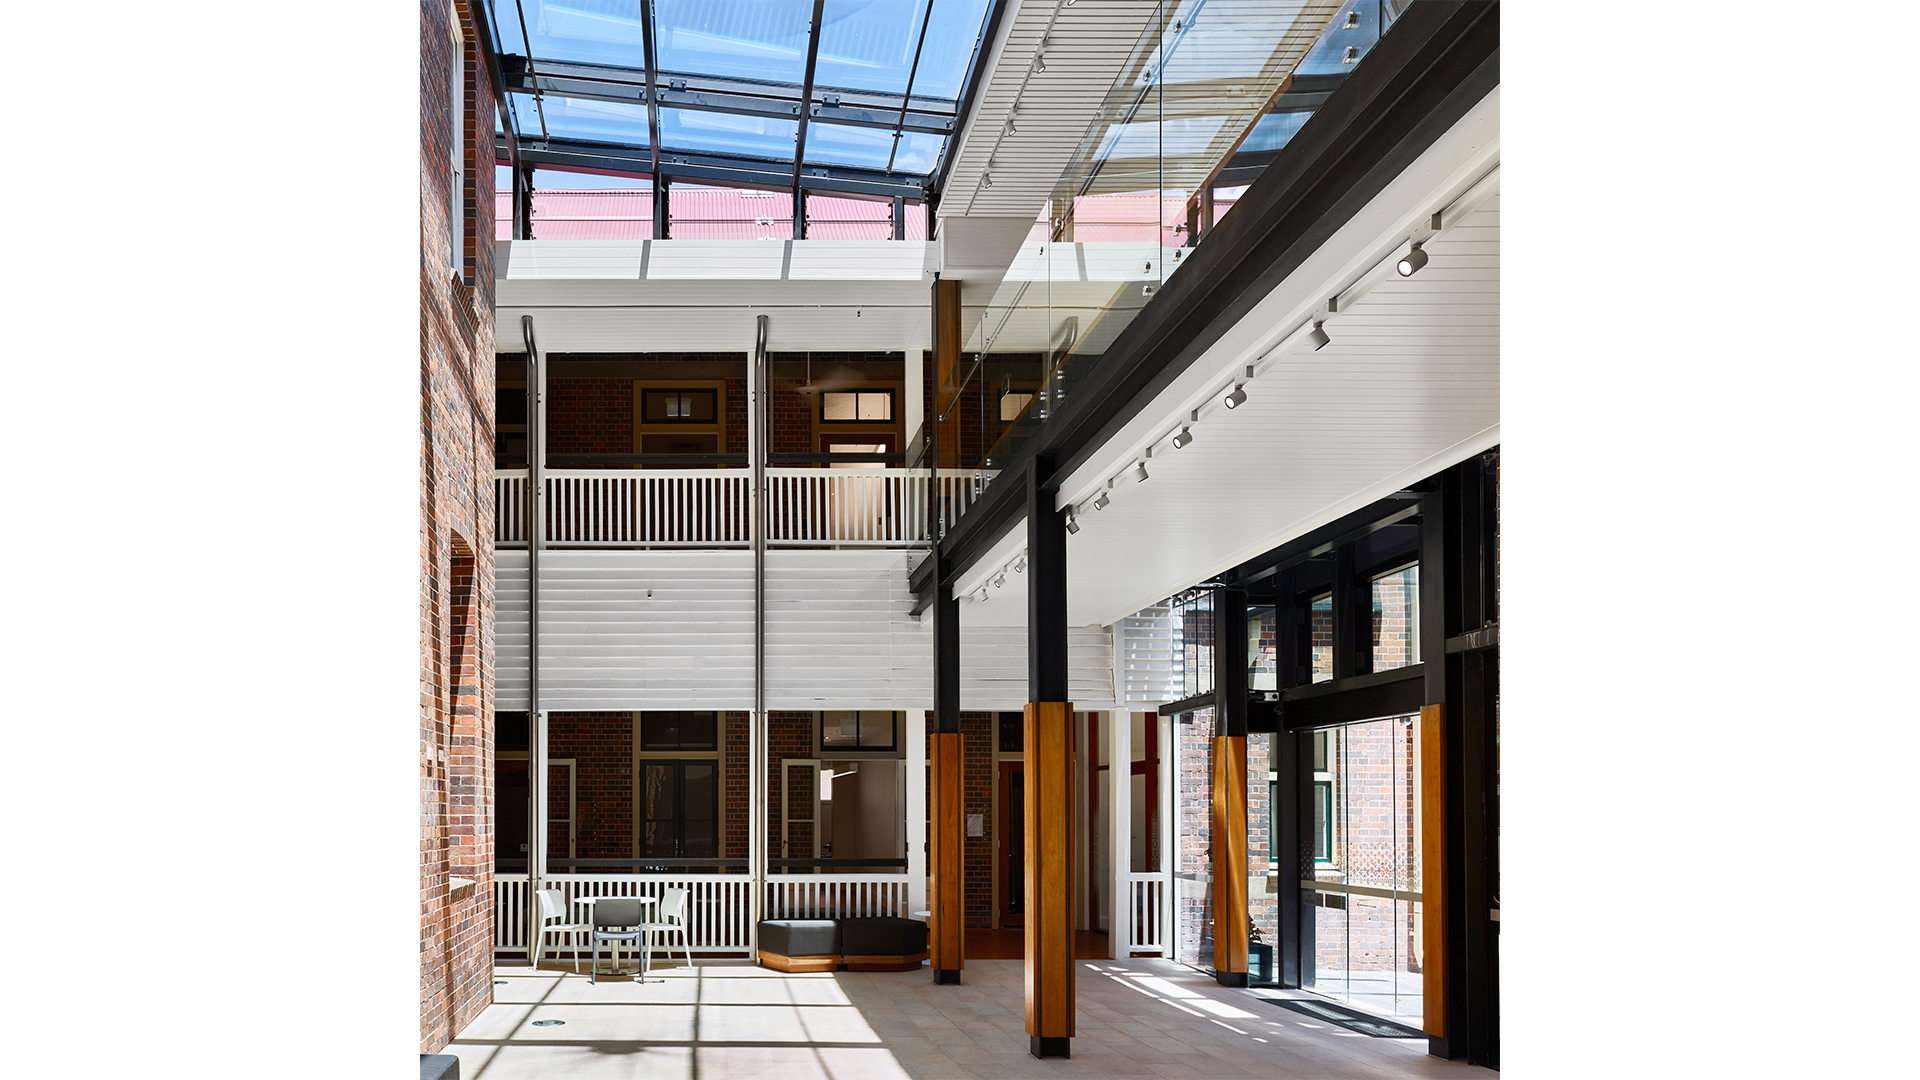 Whitty Clinical School atrium